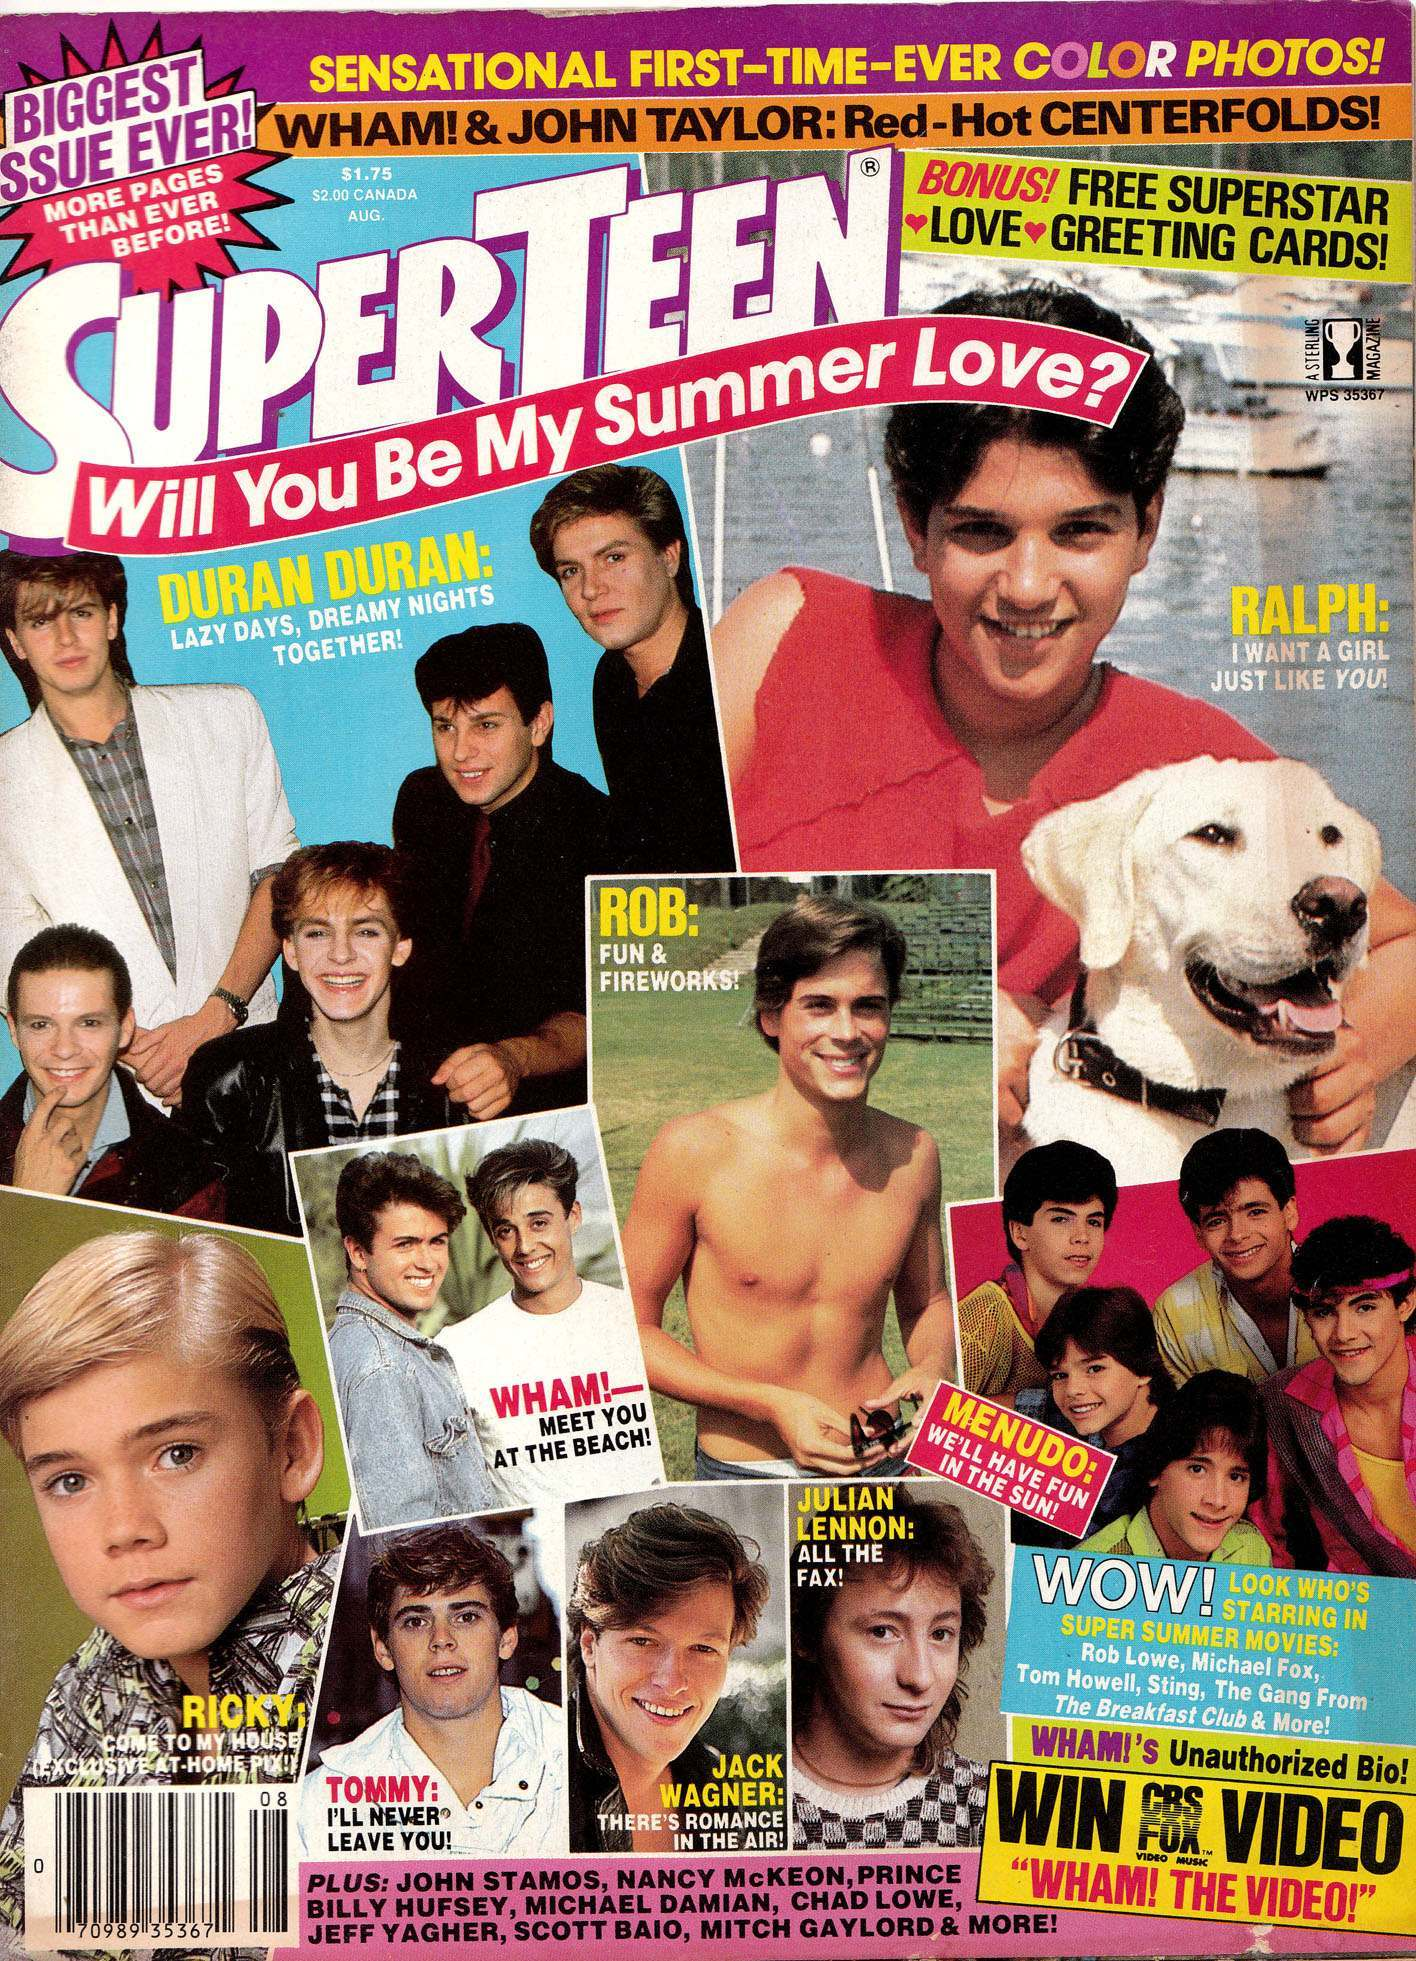 Tales Of Menudo And Macchio: A Look At 1980s Teen Magazines